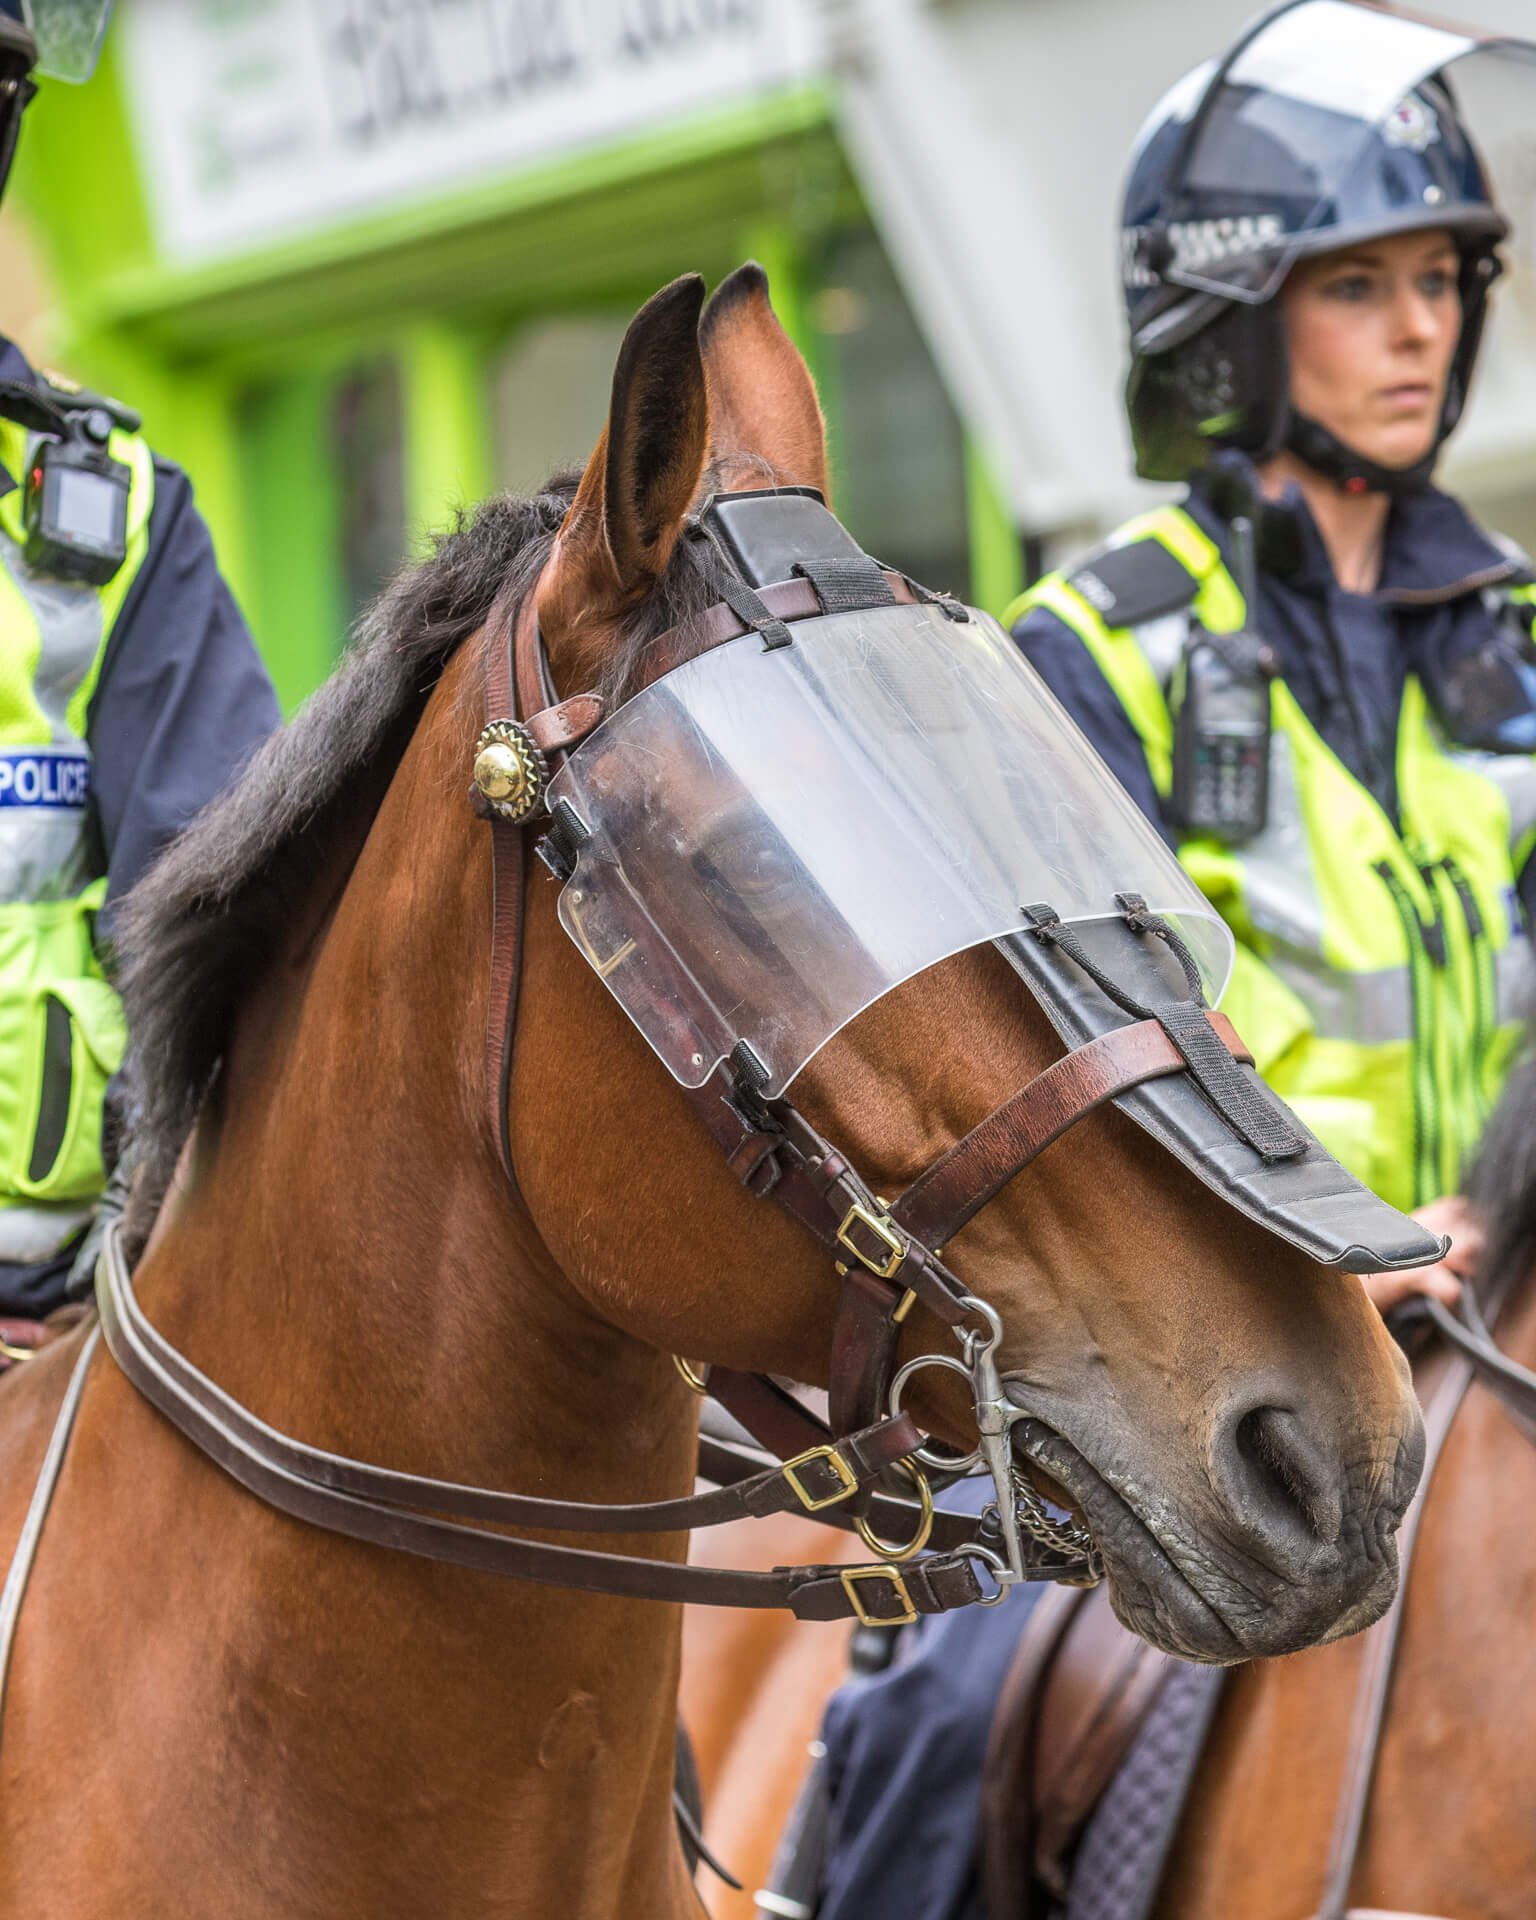 A close up image of the head of a chestnut coloured Police Horse taken during the Worcester BNP march. He wears a full vizor (which is secured to his bridle) to protect his eyes.